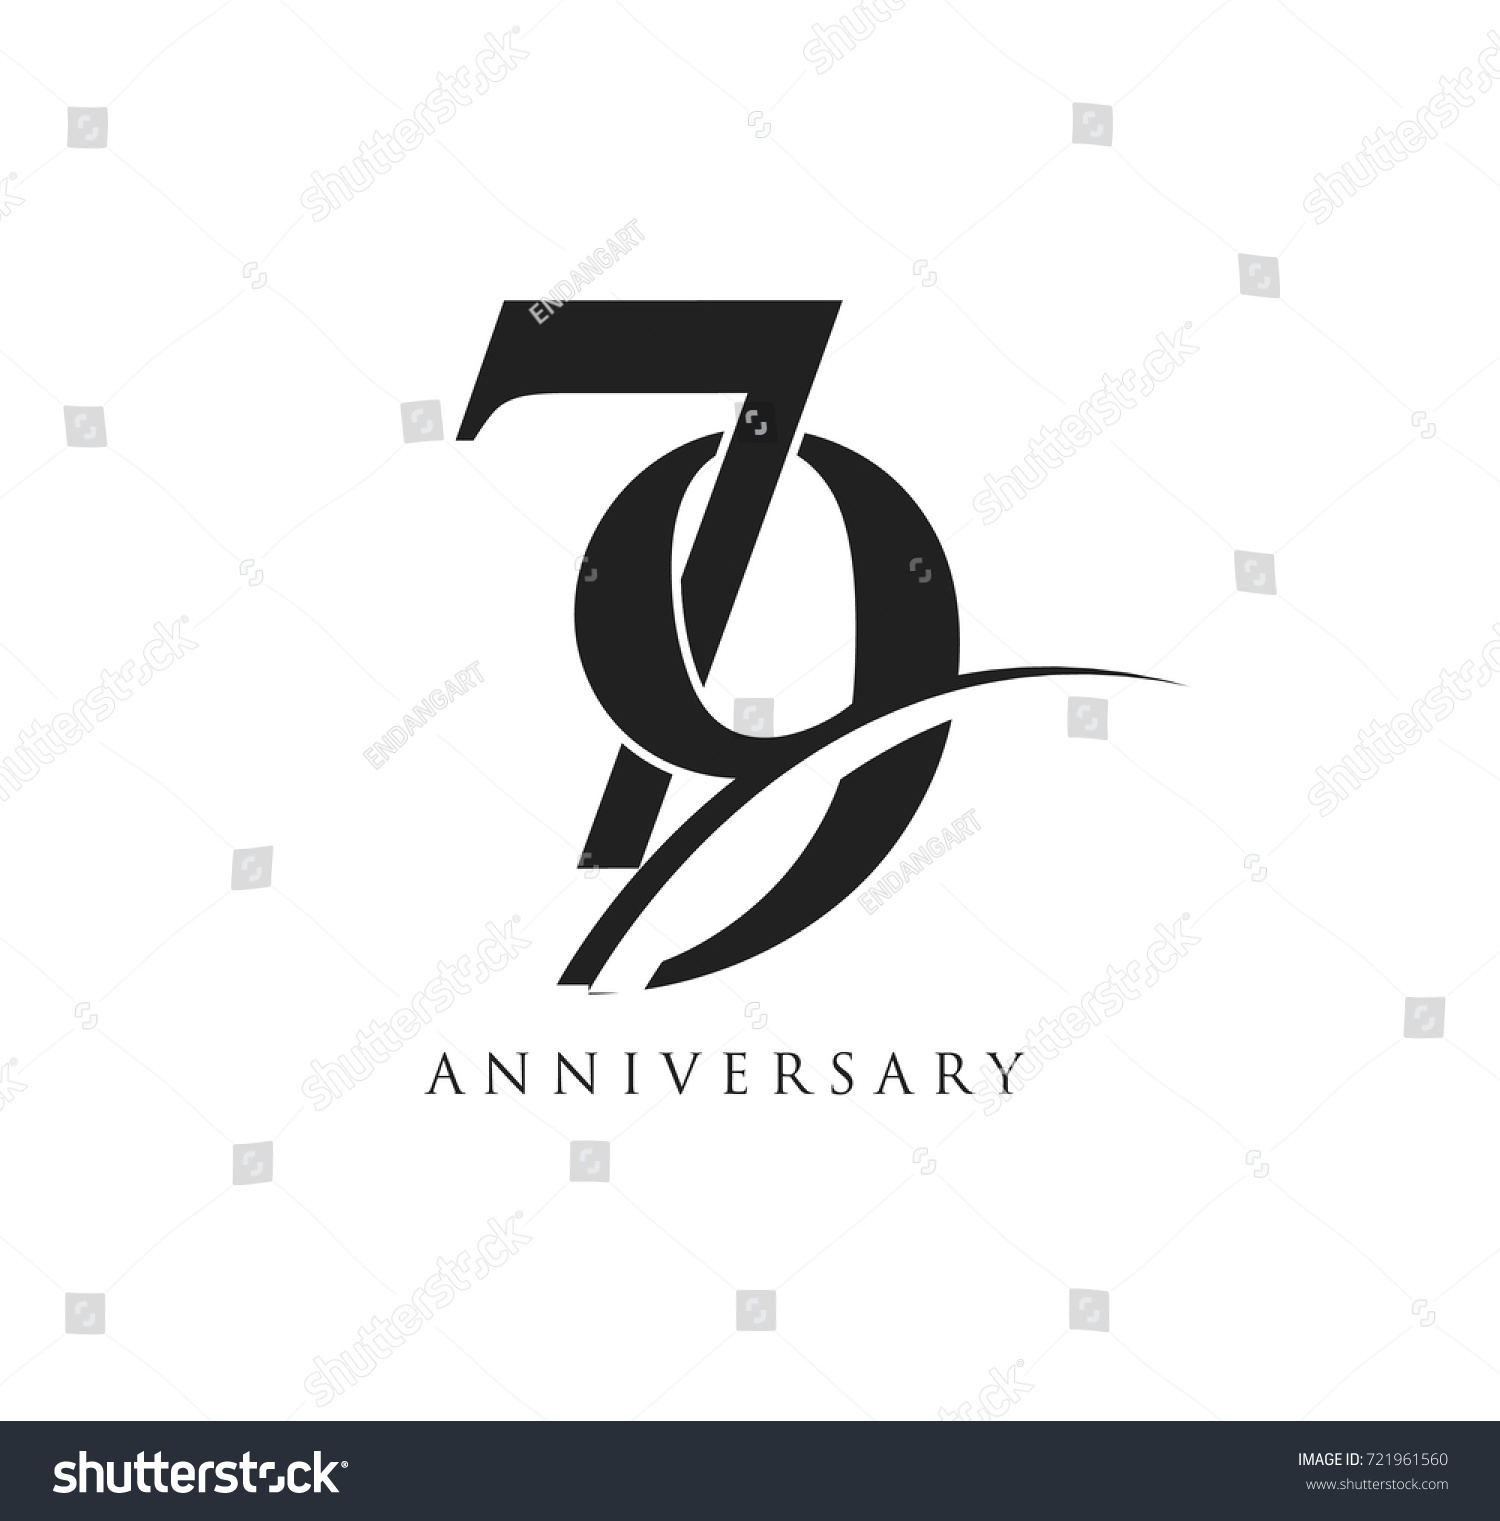 79 years anniversary pictogram vector icon, simple years birthday logo  label, black and white